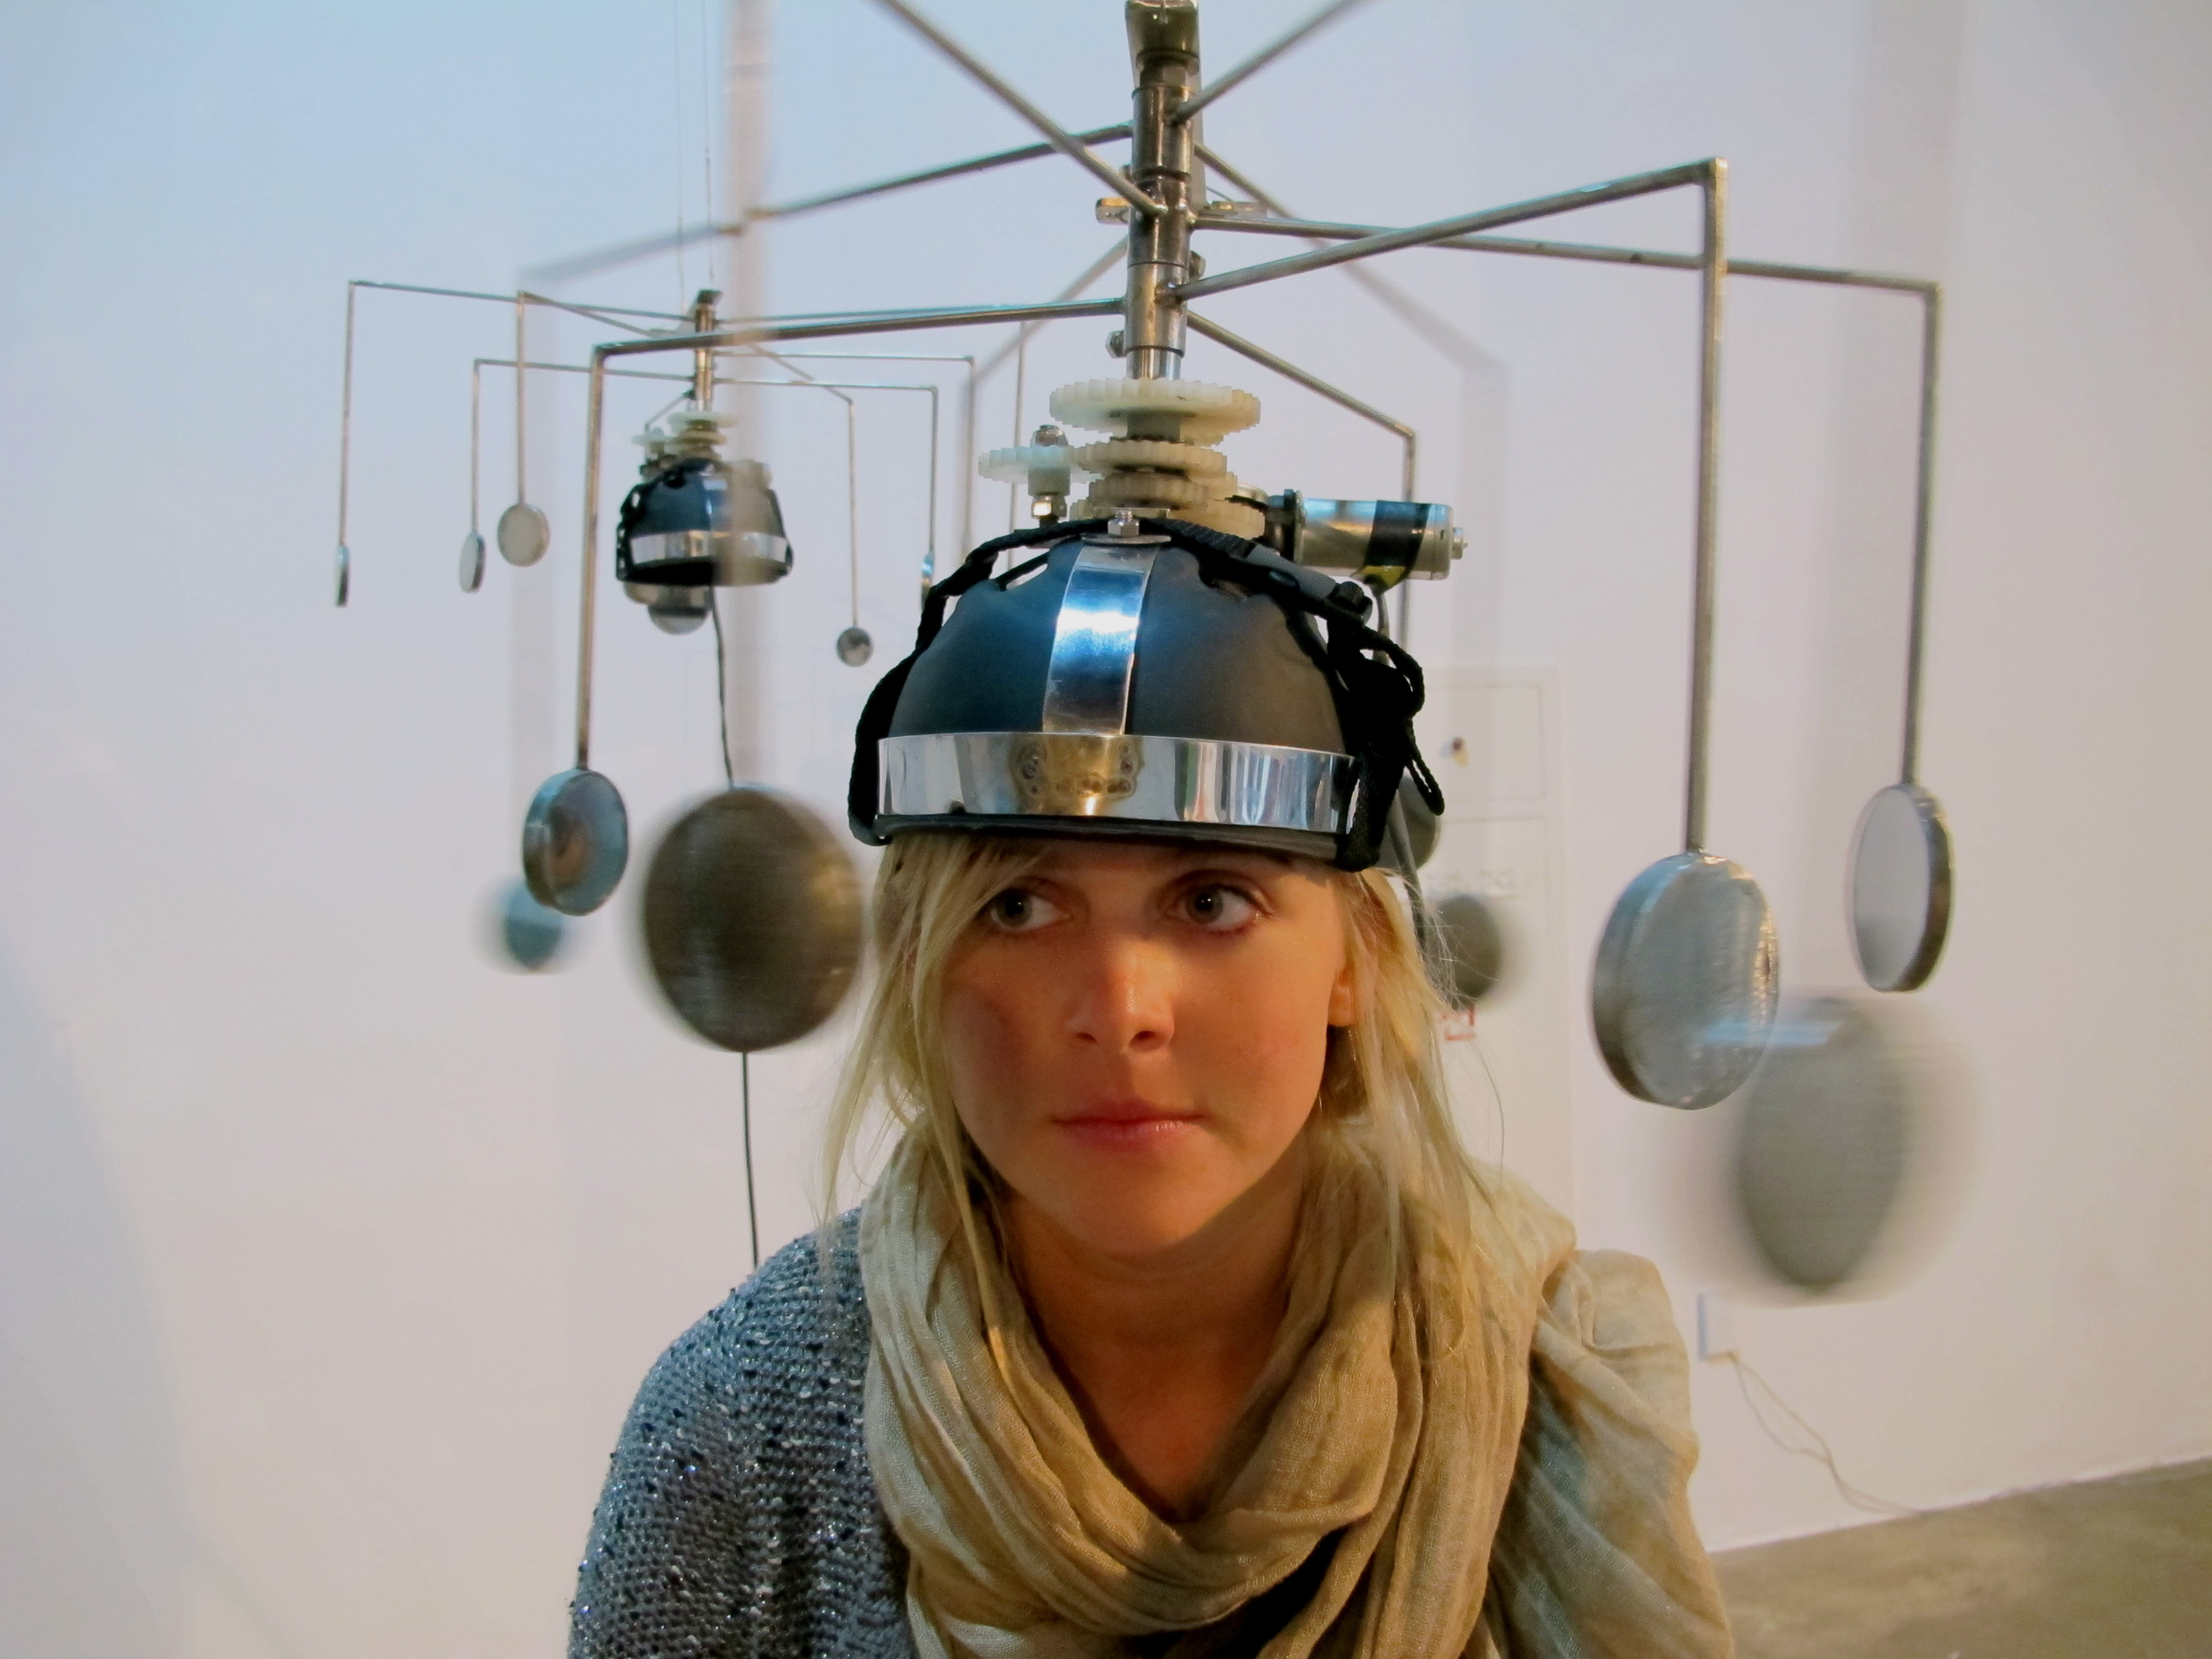 Sara Nuytemans, Observatory of the Self 2.2, 2012